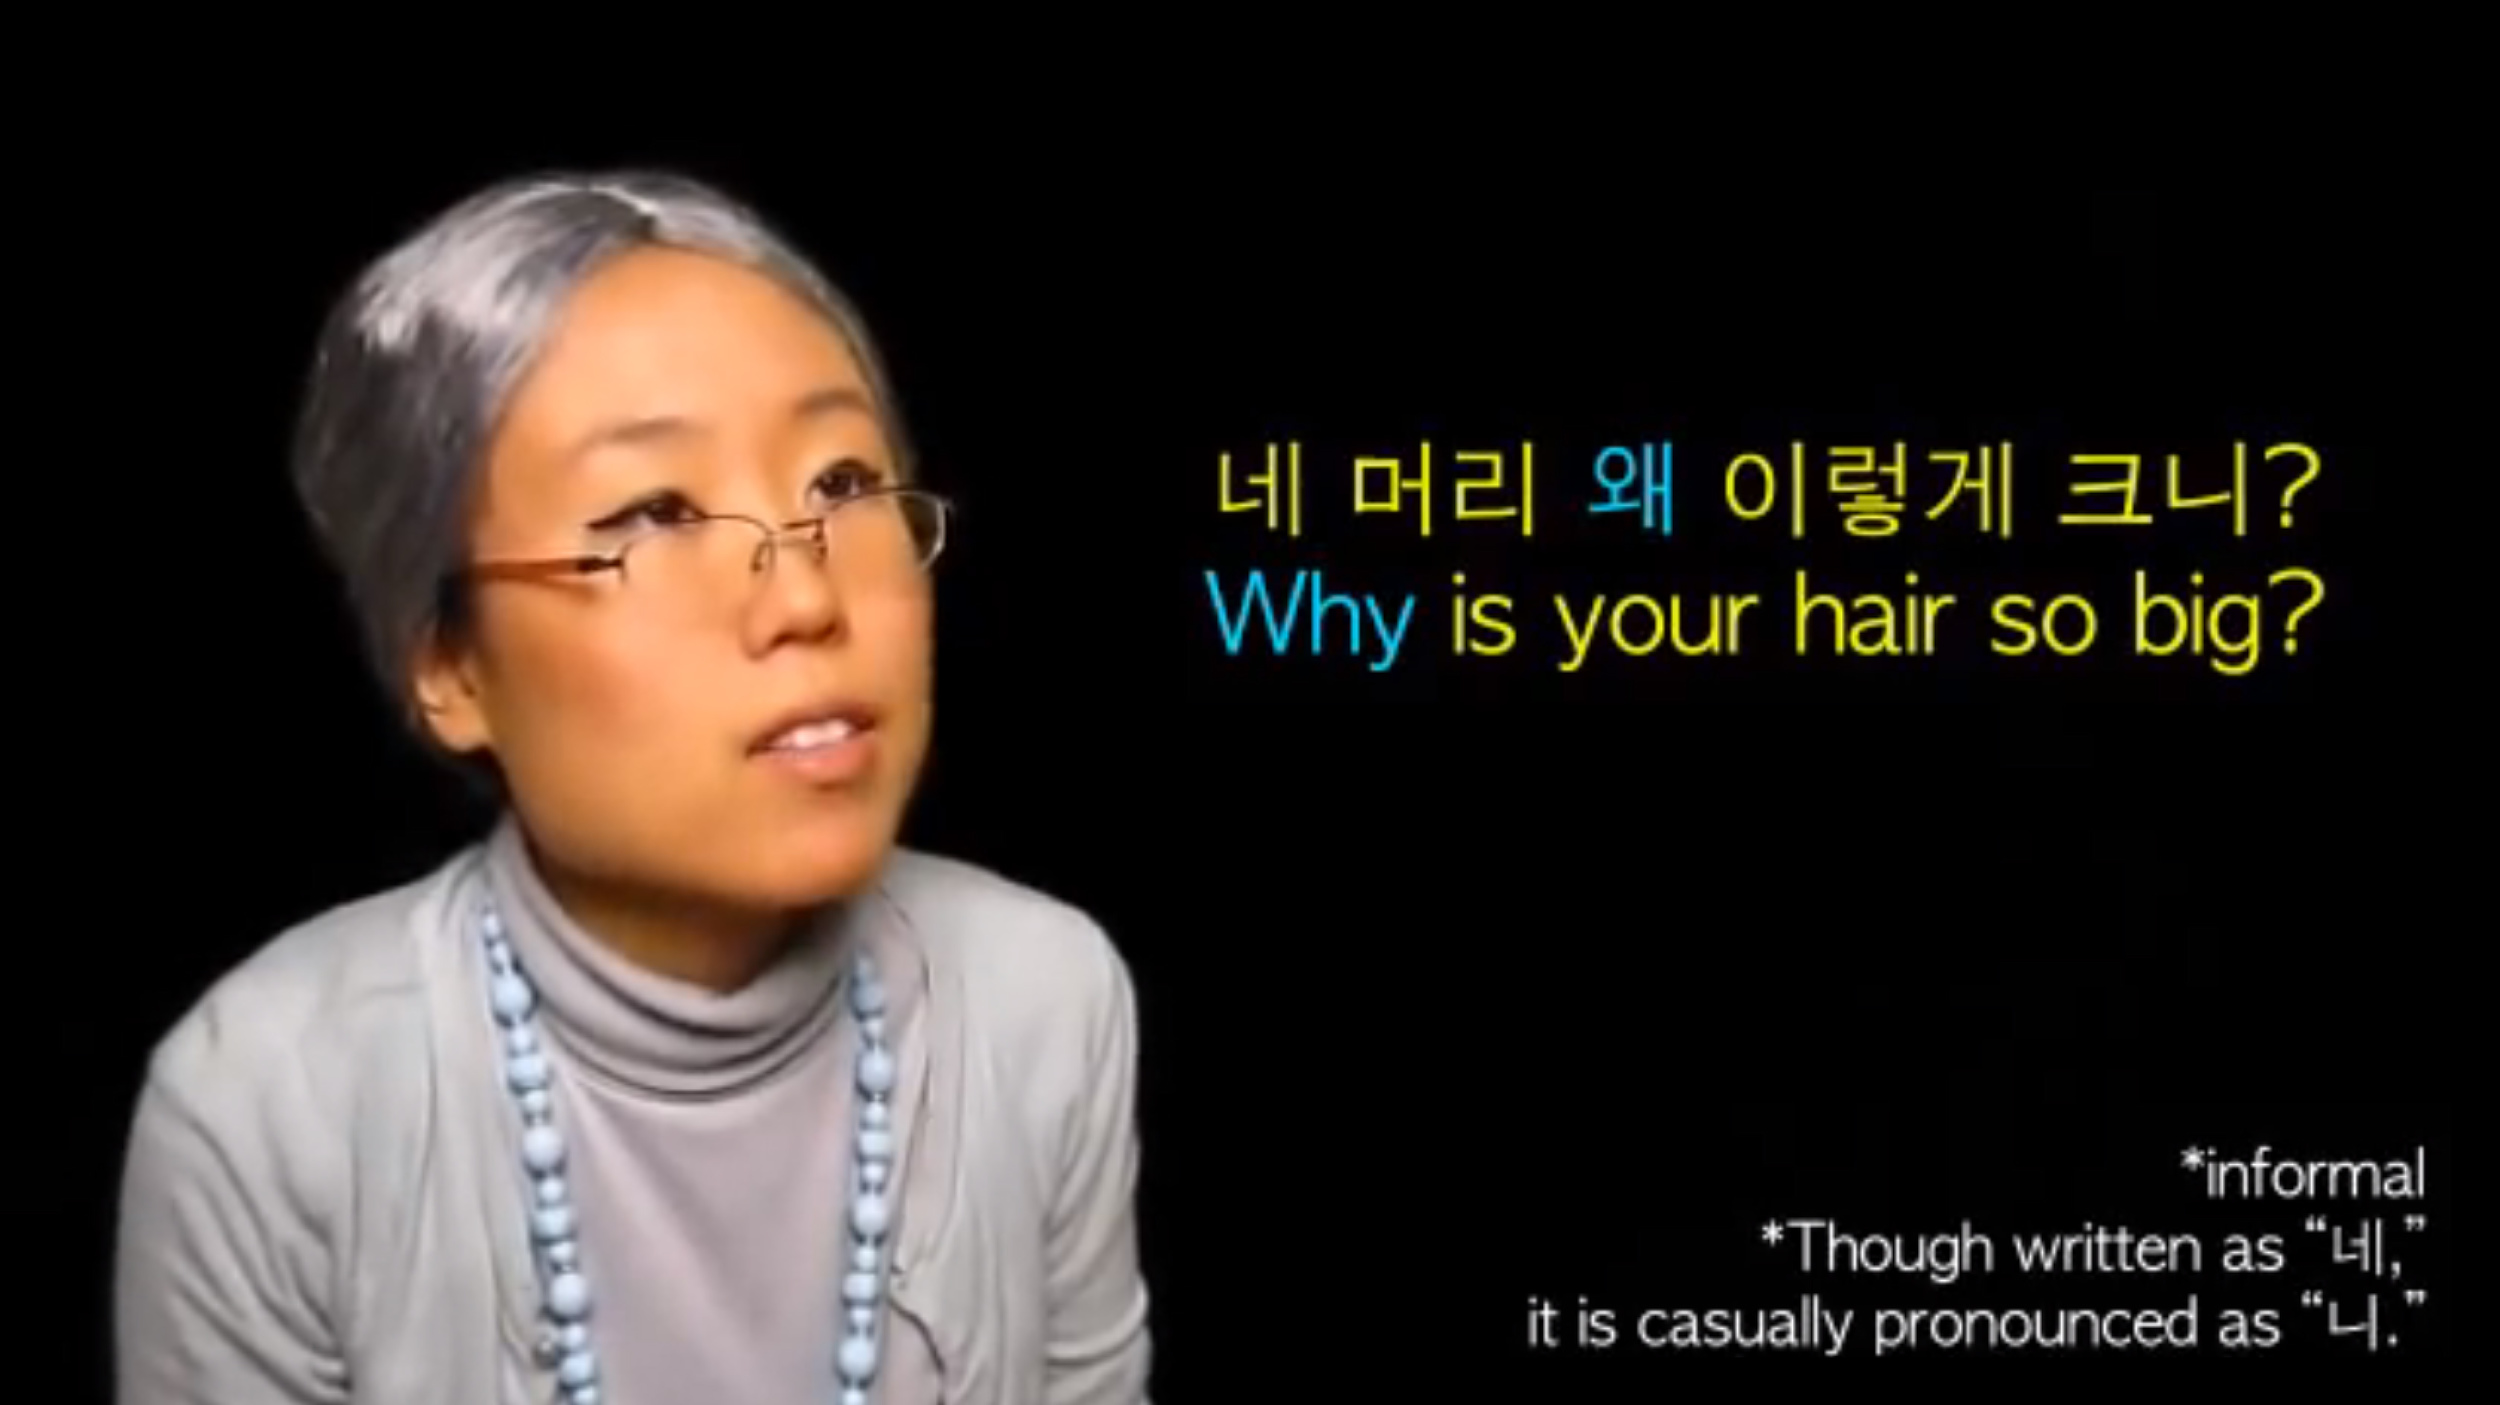 Granny Kim asks Billy Jin why her hair is so big using the diphthong WEH.